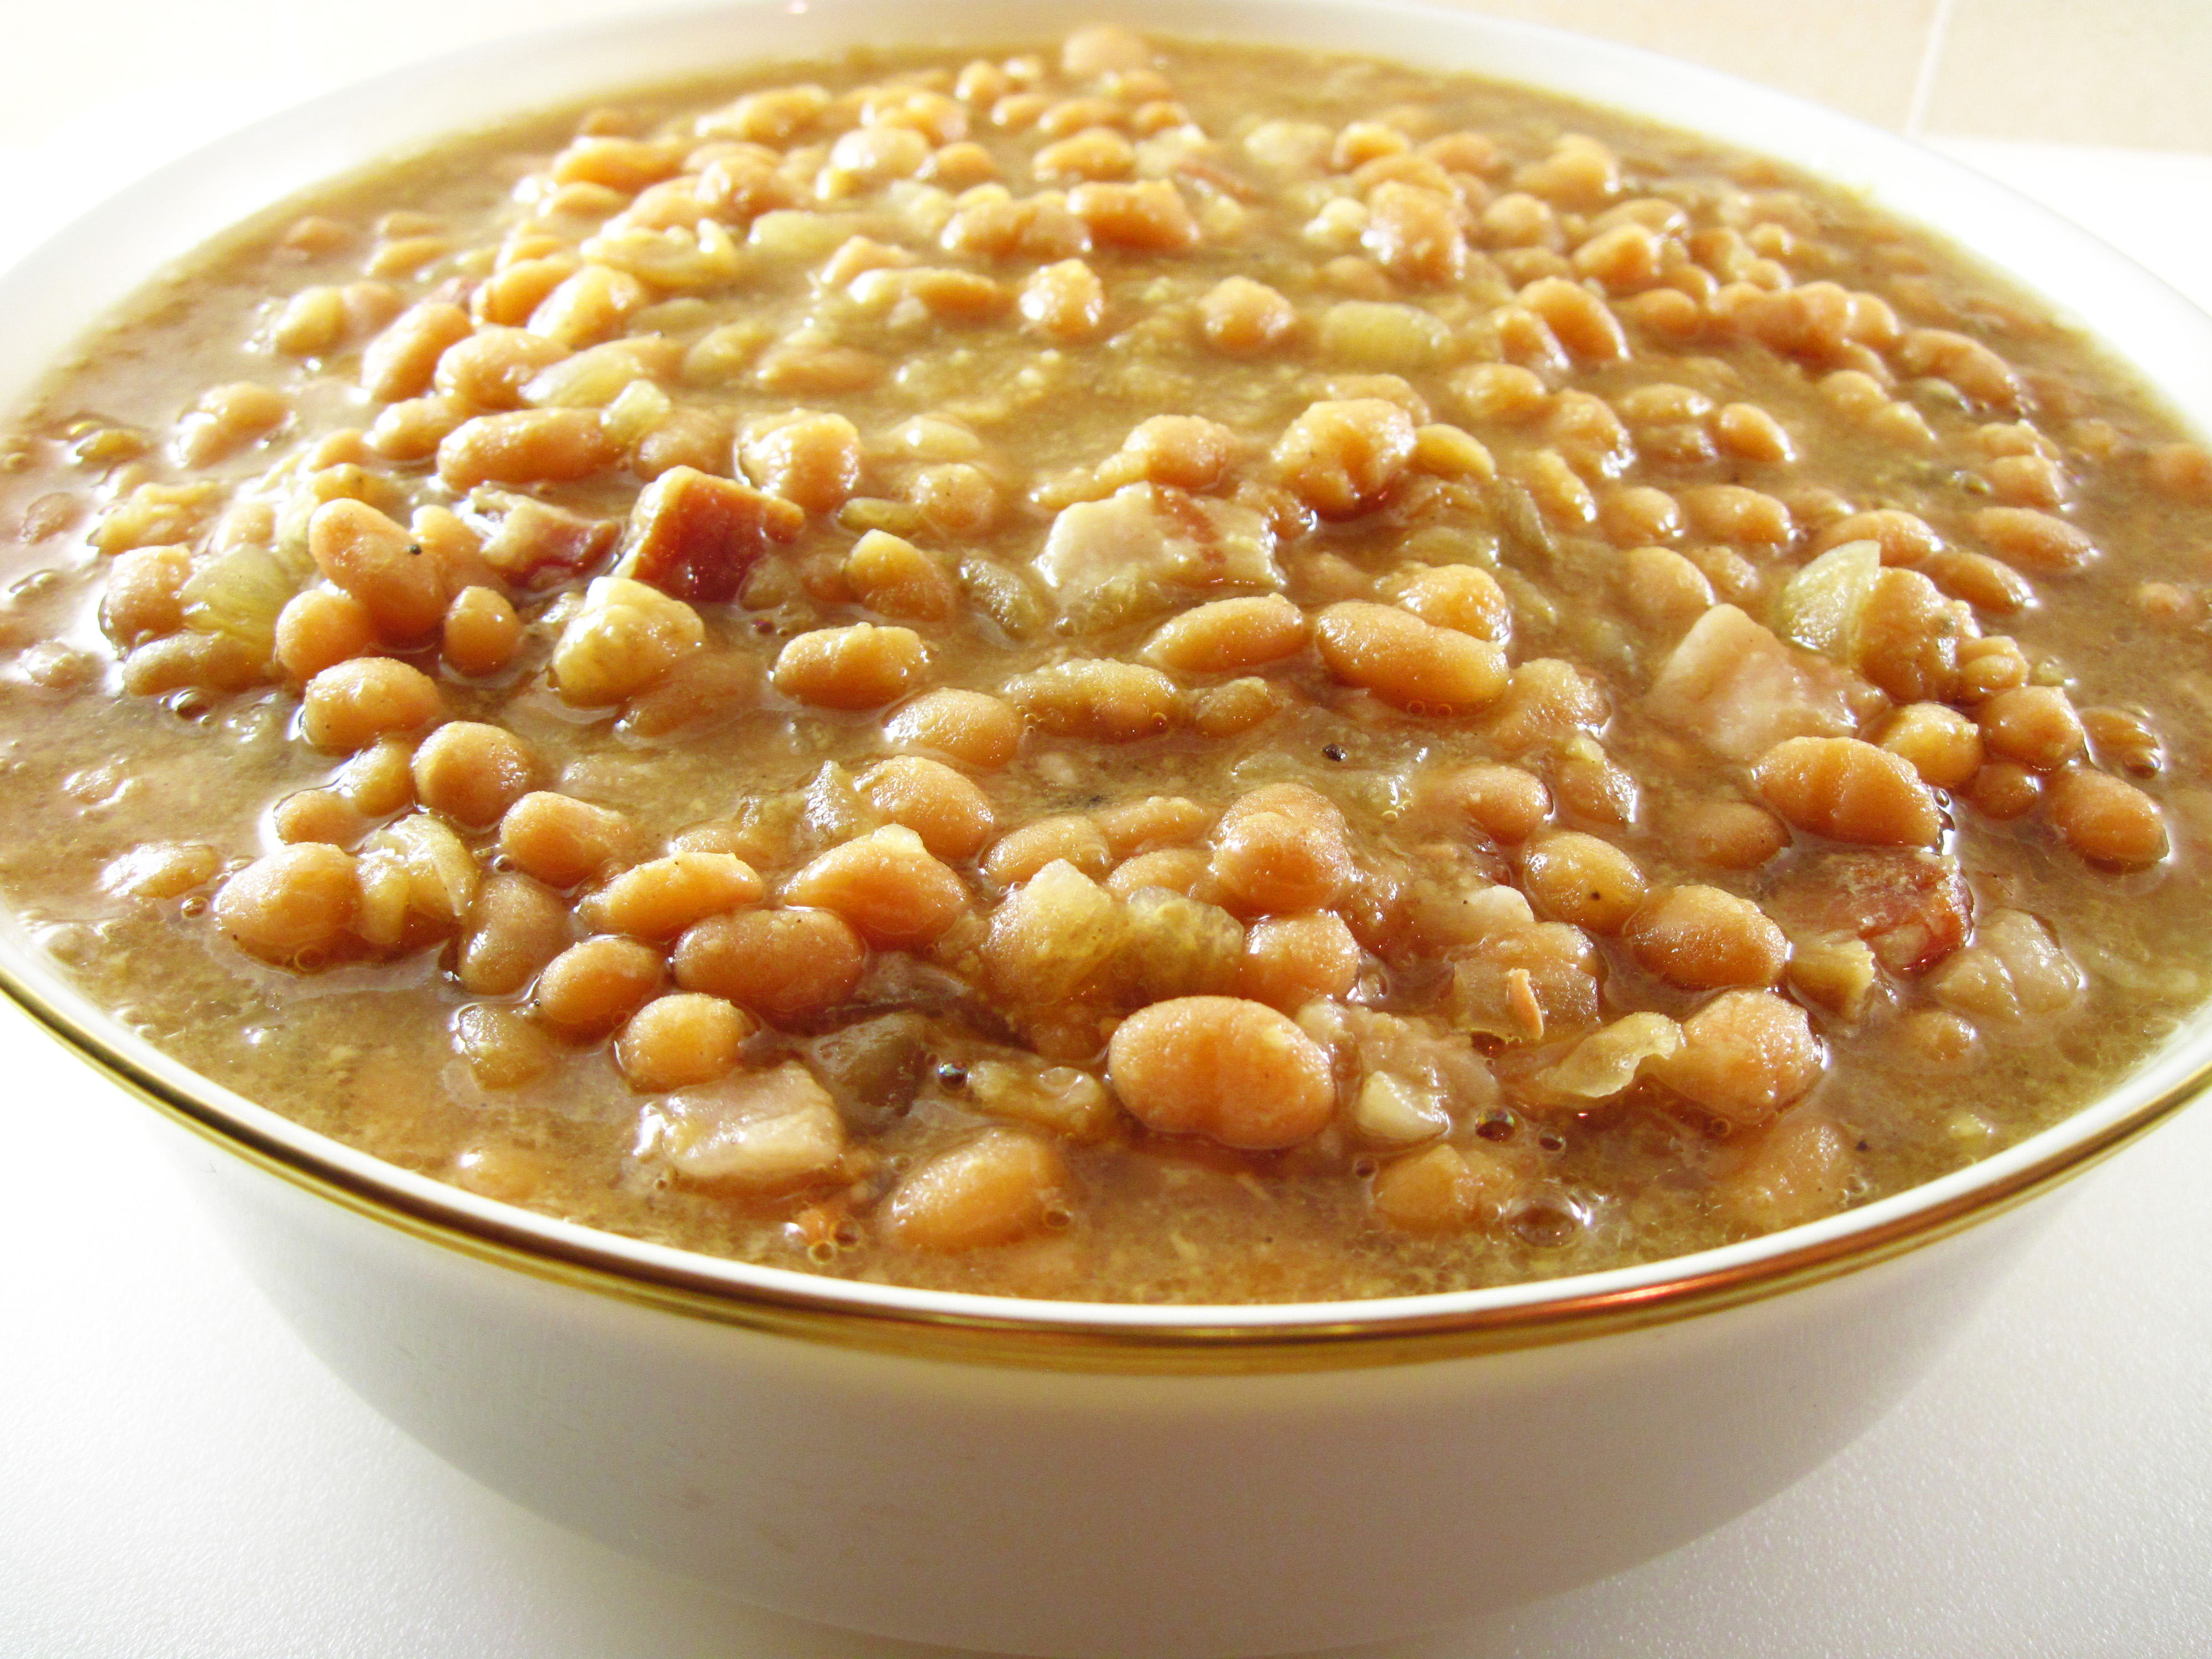 Slow Cooker Maple Baked Beans | In the kitchen with Kath